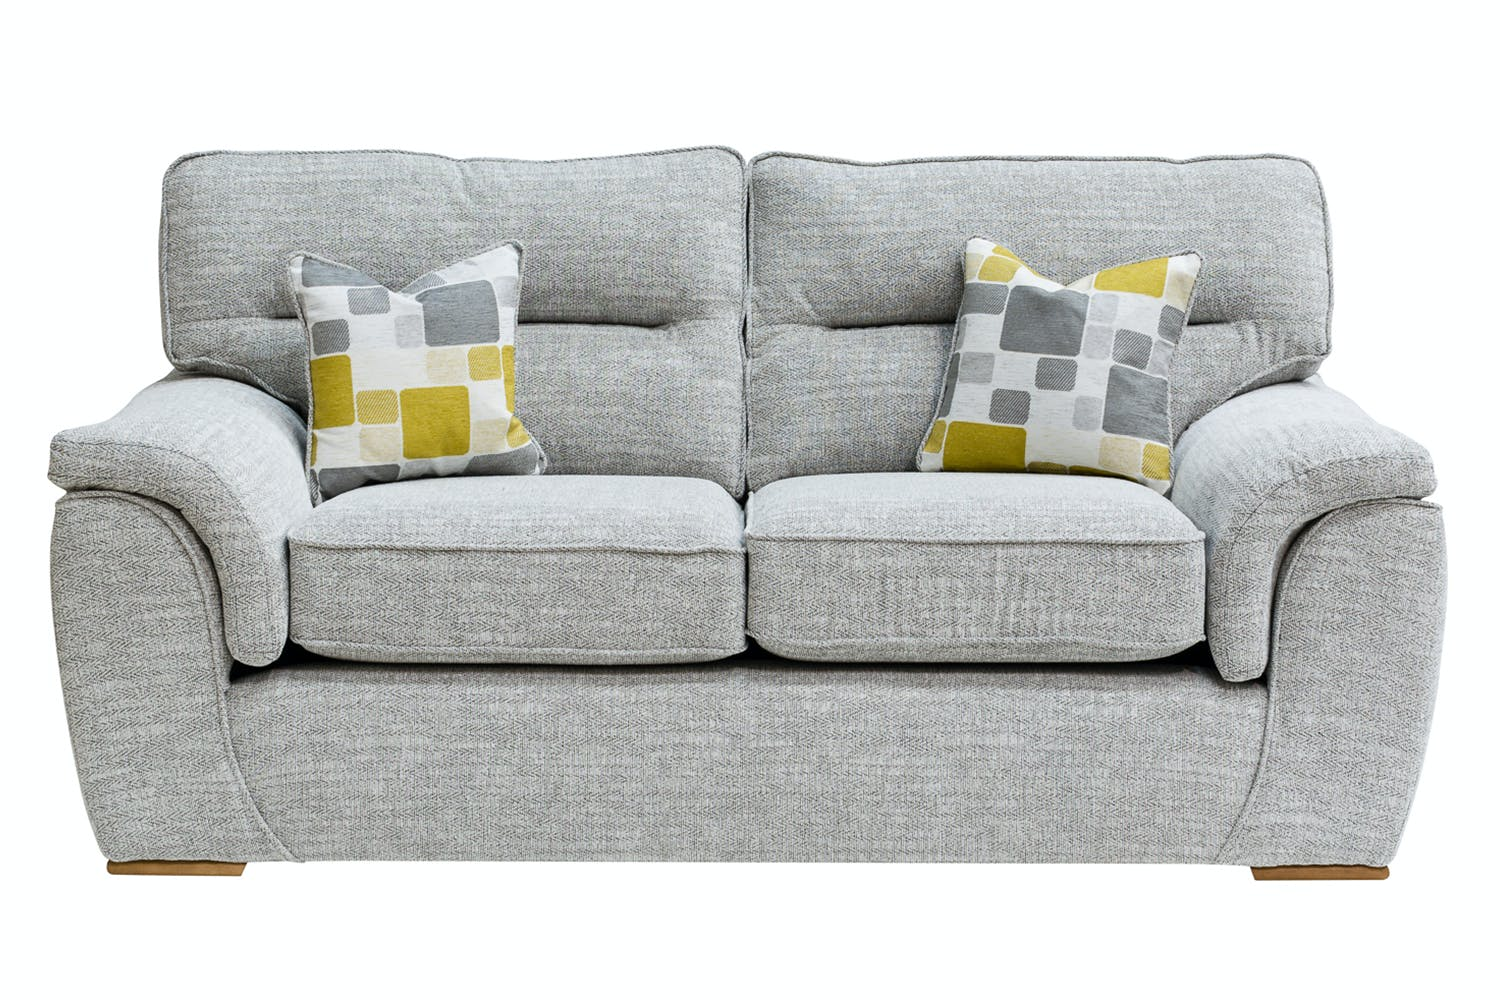 Sadie 2 Seater Sofa